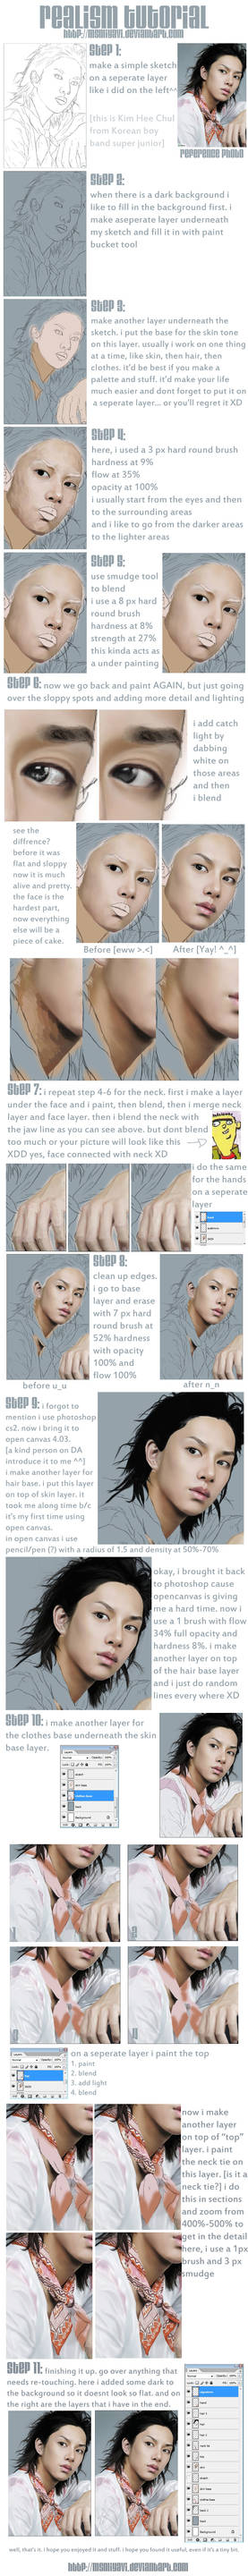 CG Realism Tut for beginners by MsMiyavi